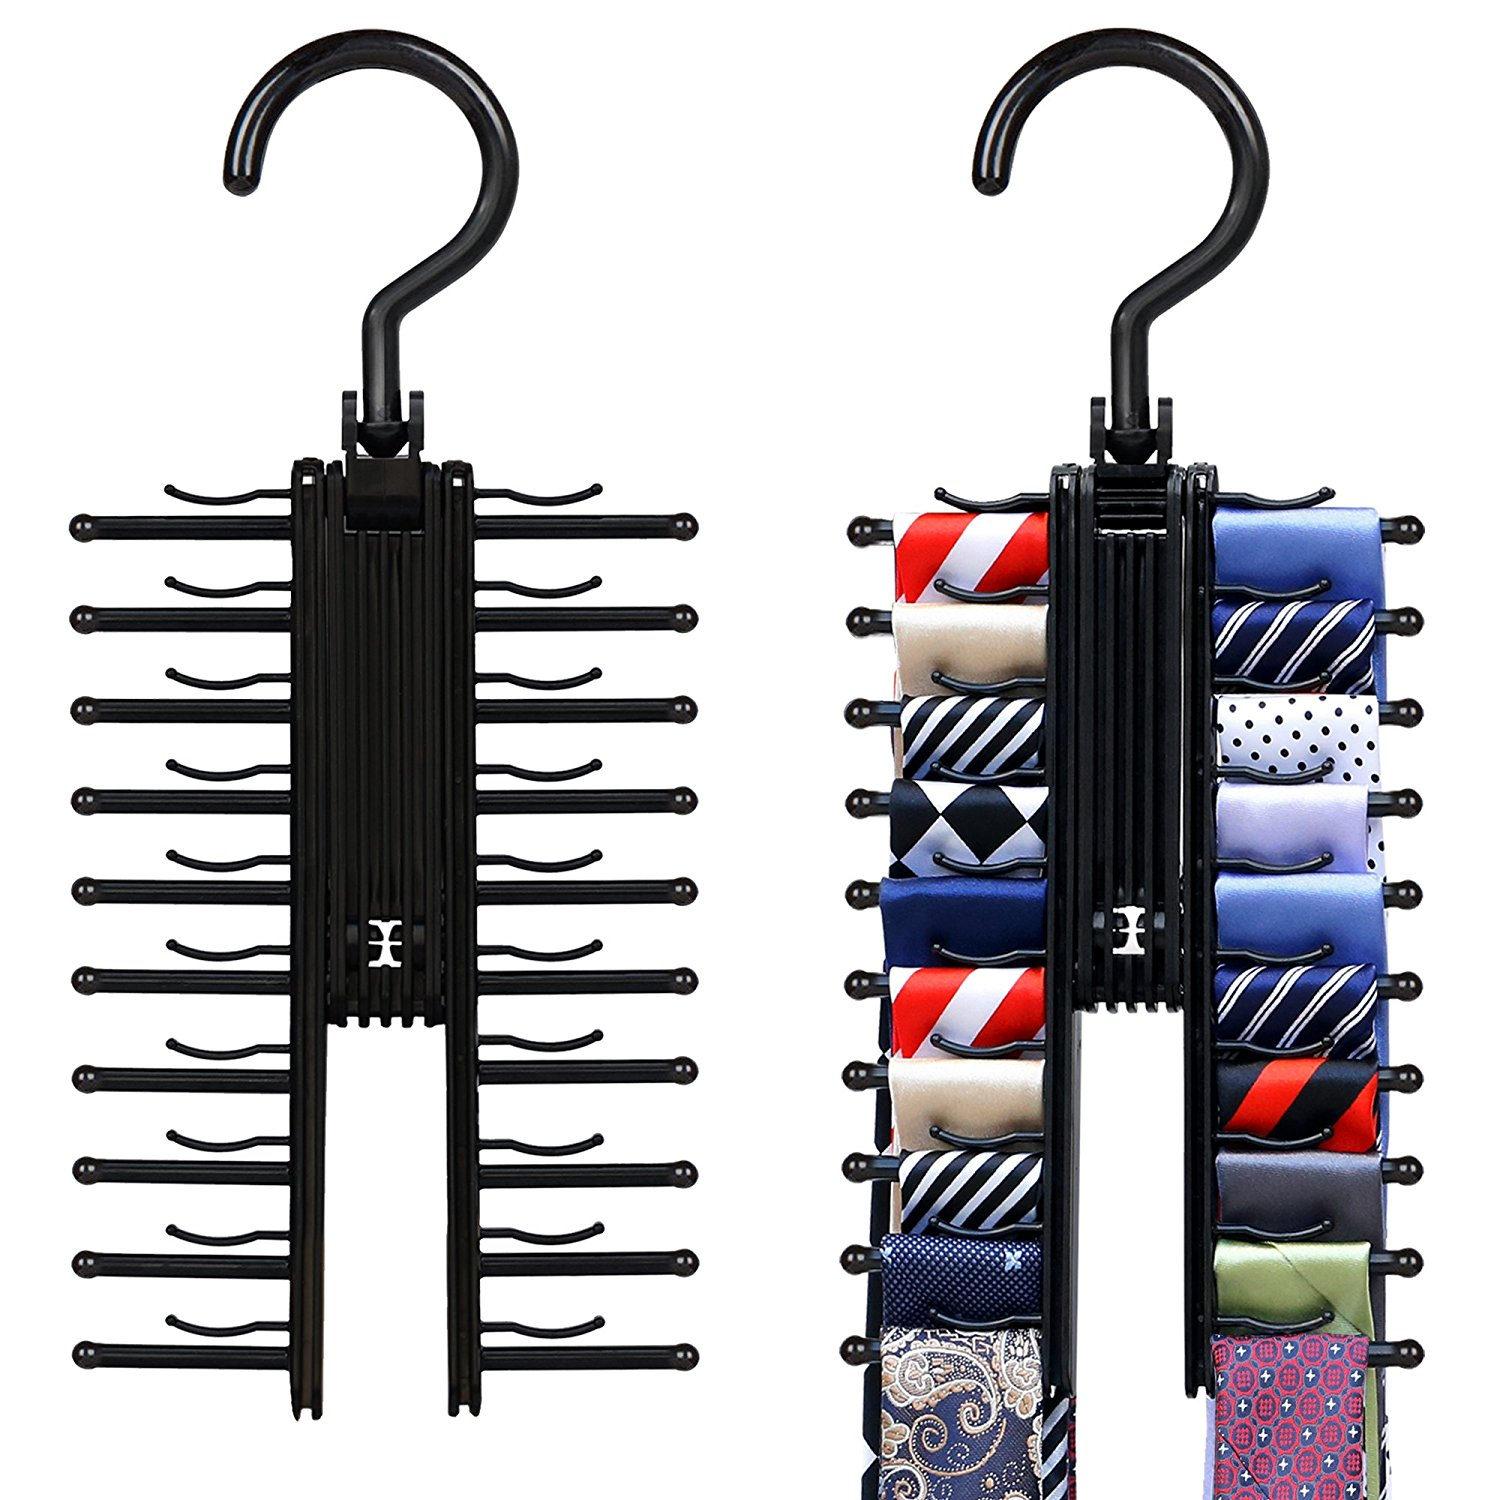 Tie Rack, IPOW Pack of 2 Tie Hanger w/ Belt Hooks Rotating Twirl Tie Rack Scarves Cross Hanger Holder for Closet Organizer Belt Storage Holds 20 Neck Ties, Black